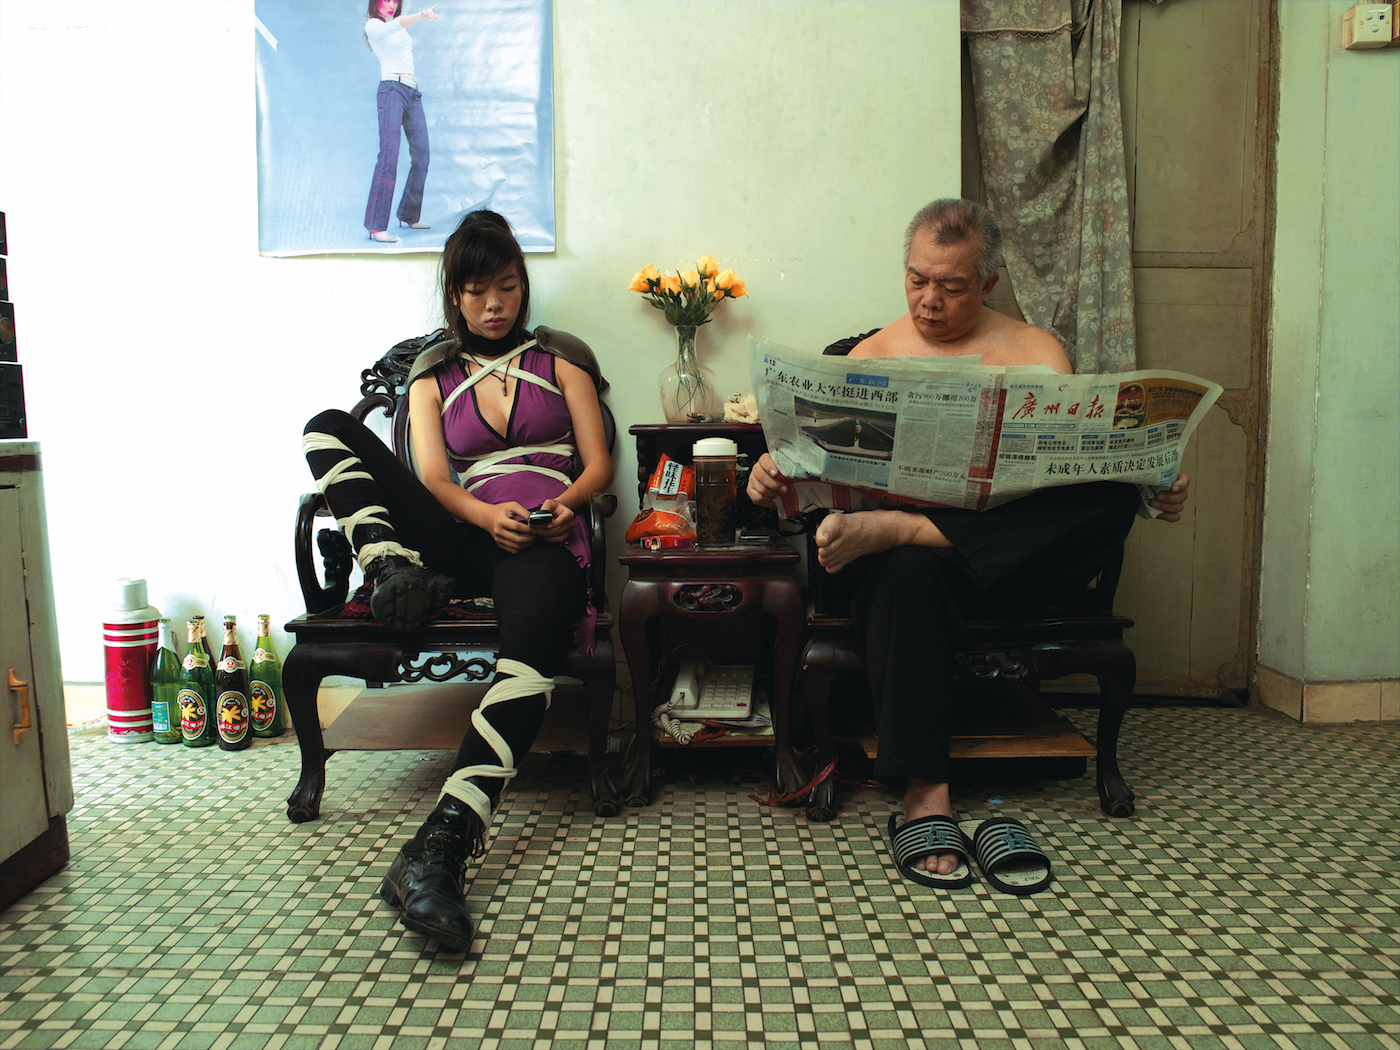 Copy of Cosplayers_A Ming at Home_2004_C-print_75x100cm